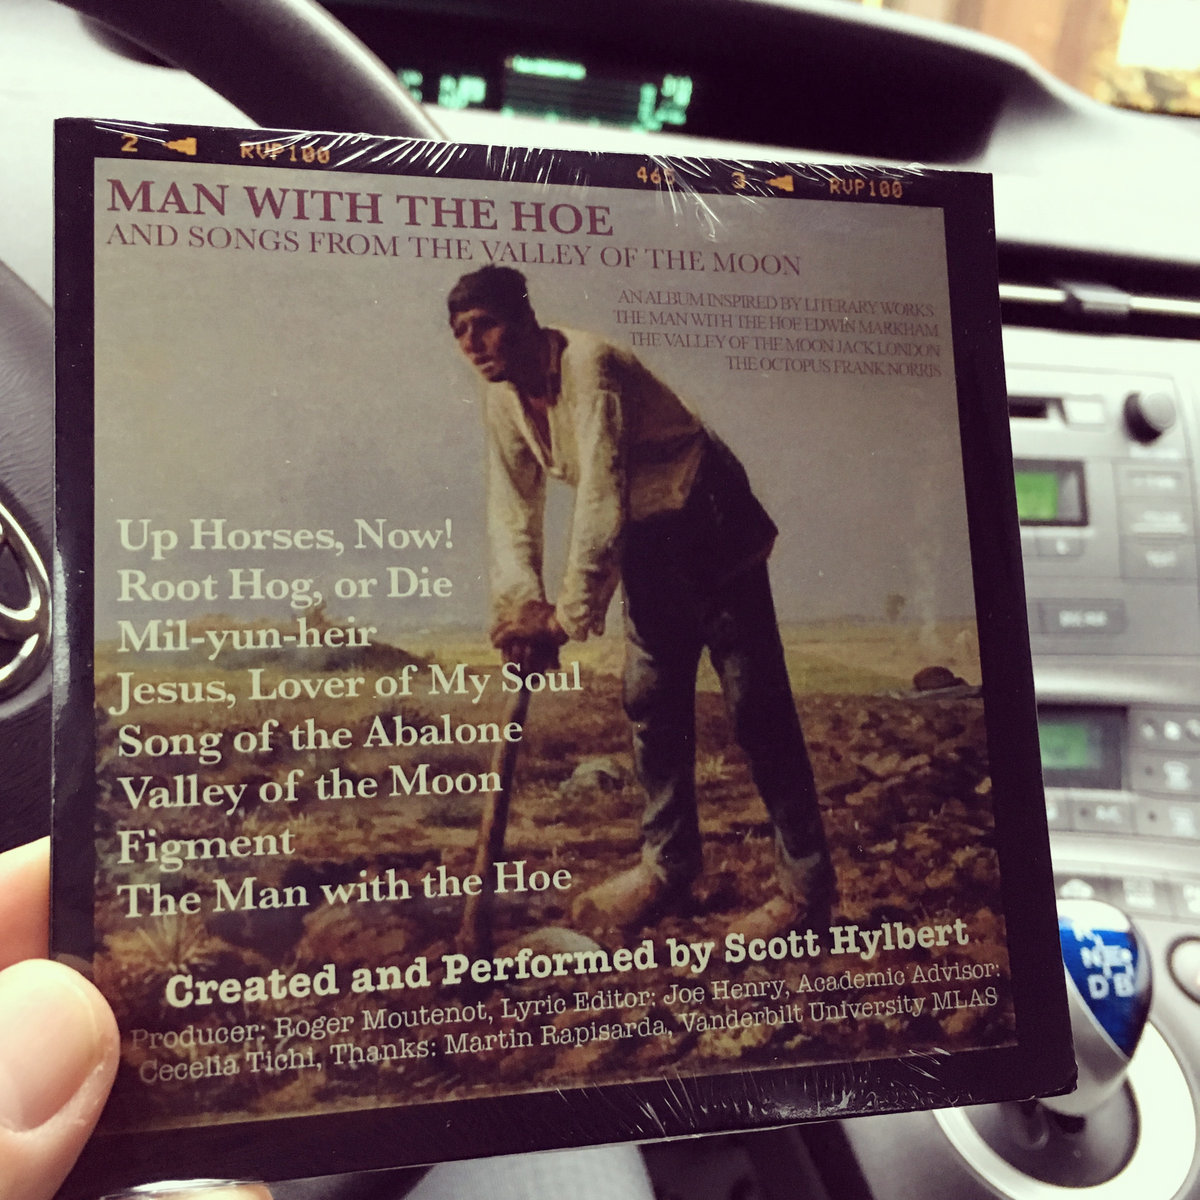 man the hoe and songs from the valley of the moon ik ben features a contextual essay on back cover includes unlimited streaming of man the hoe and songs from the valley of the moon via the bandcamp